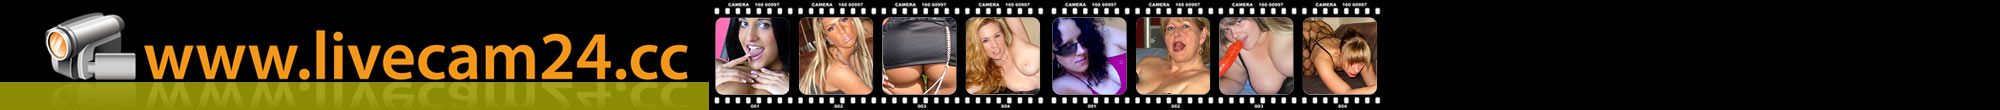 EllaErotica, 28 Jahre, BH: 75 A - brüste 75dd -  - Video Web Cams Live Sex Chat von heissen Girls